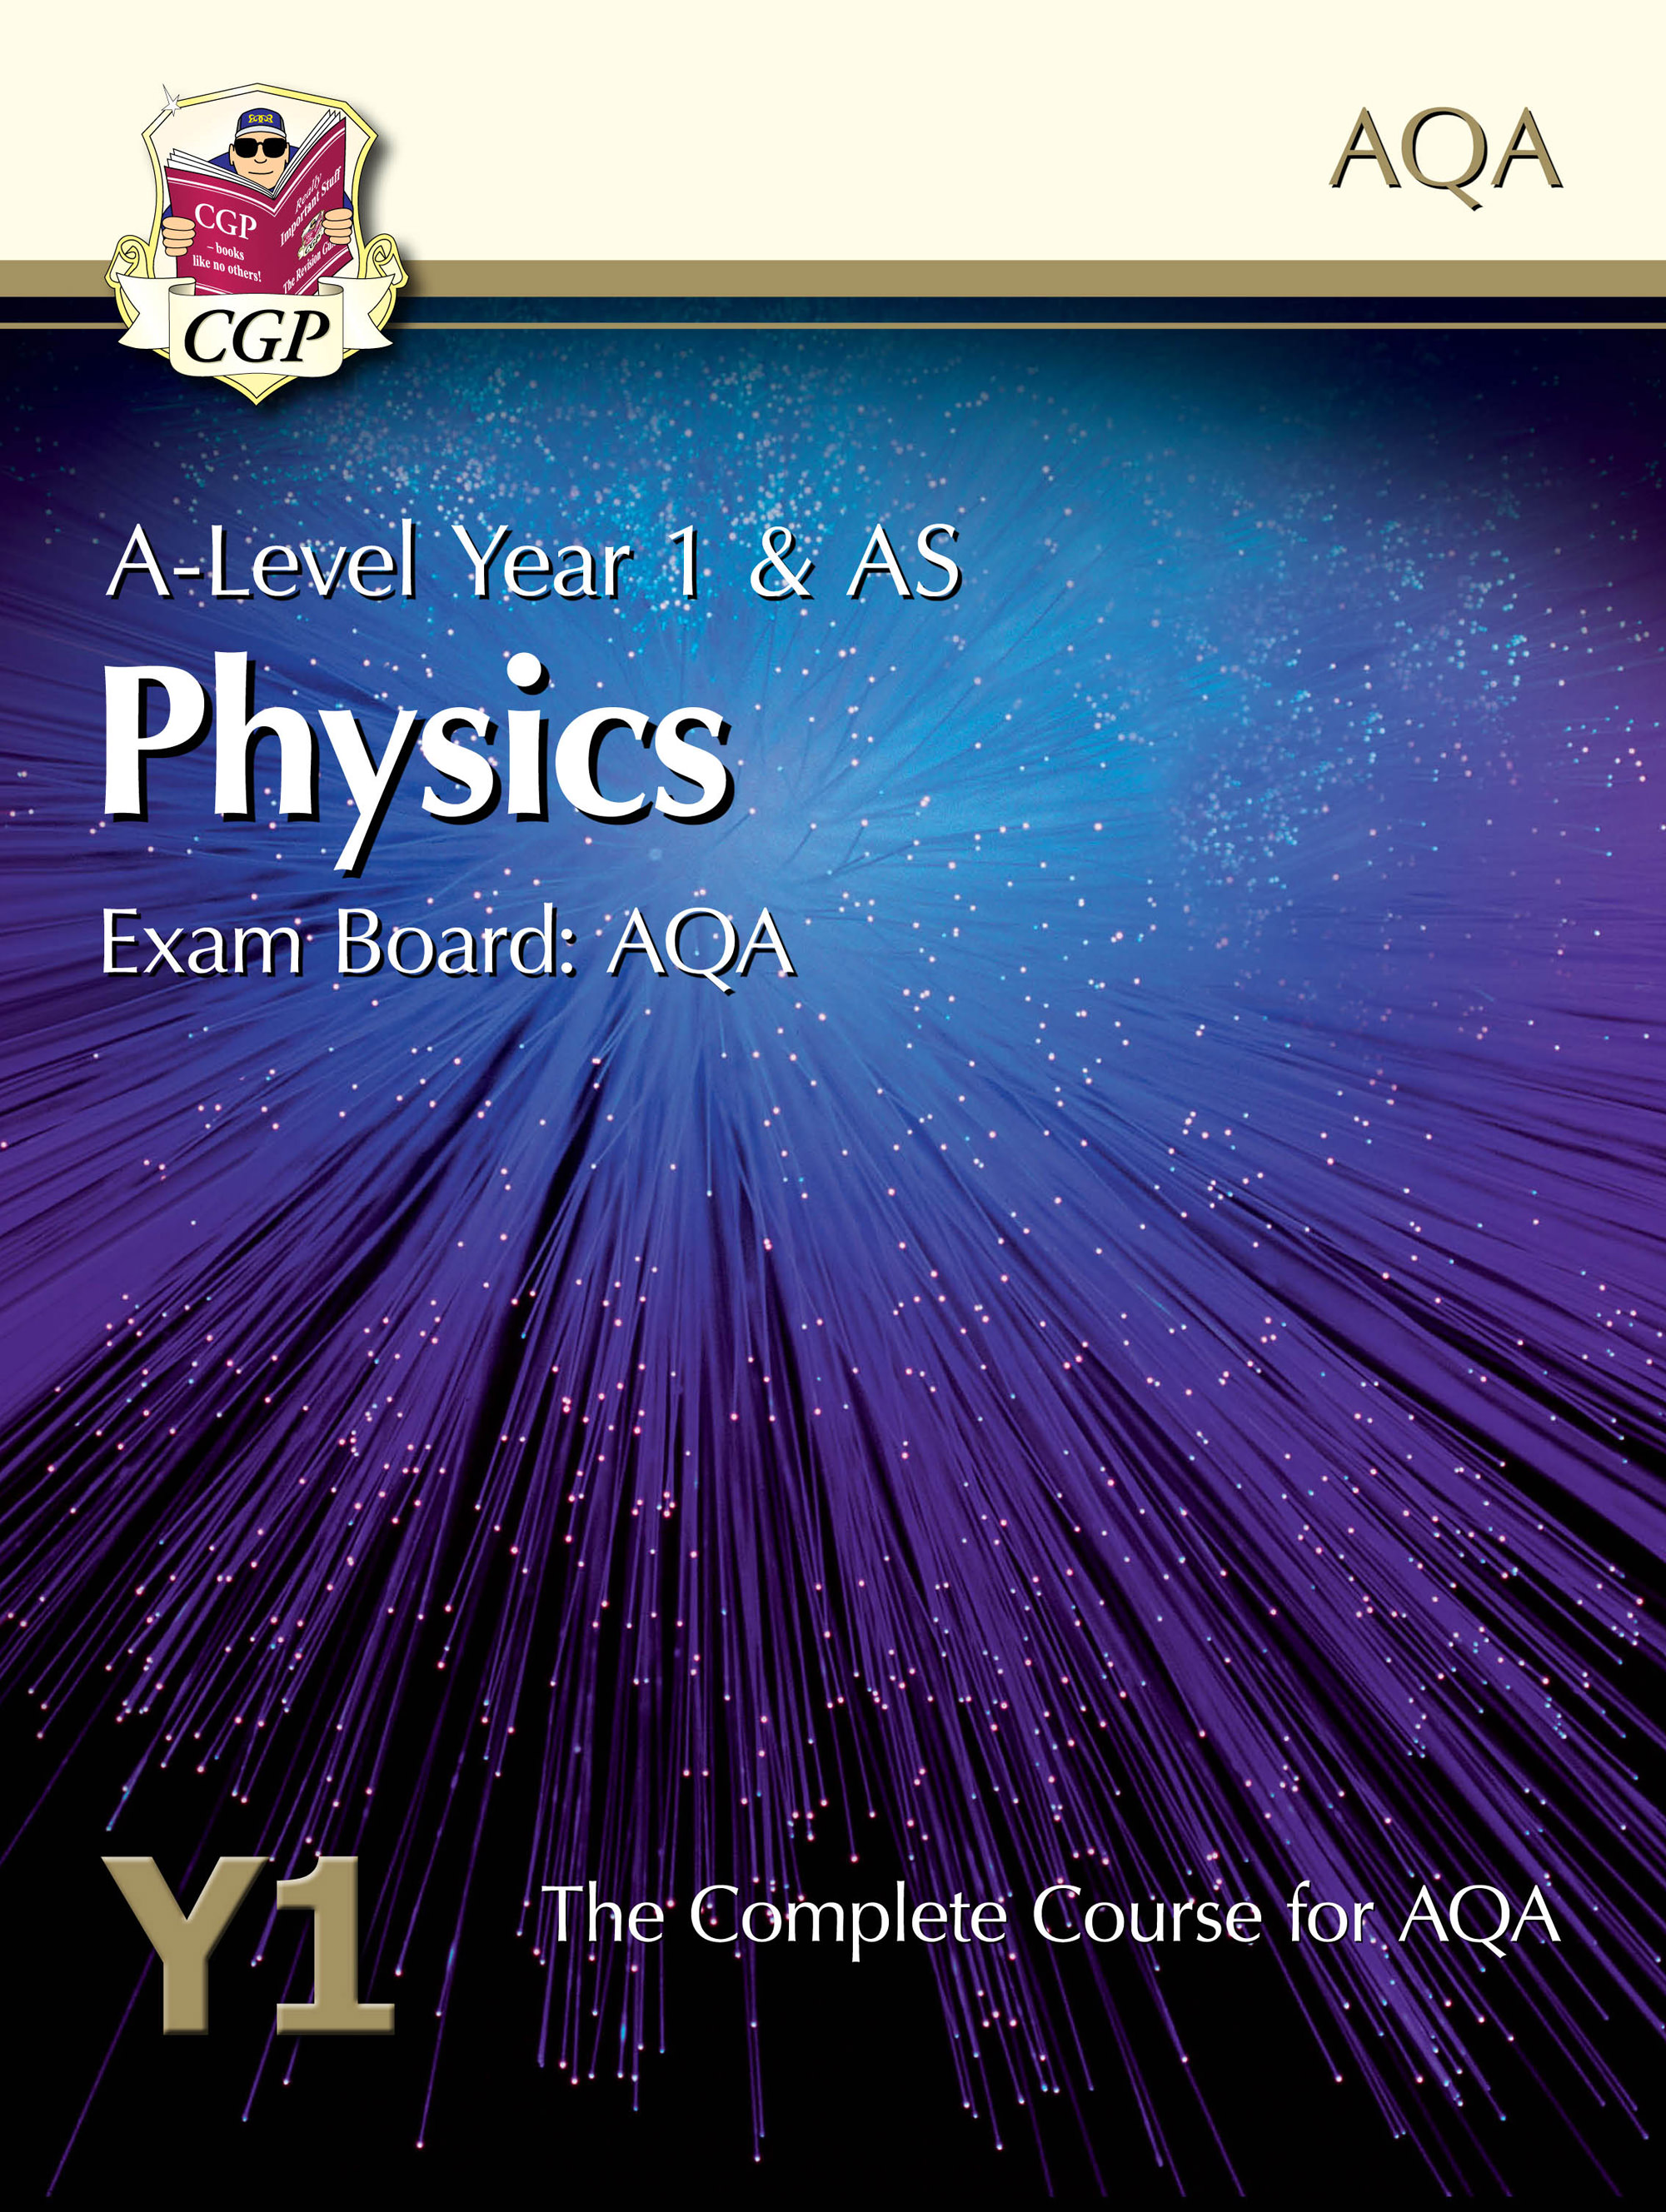 PATB52DK - A-Level Physics for AQA: Year 1 & AS Student Book